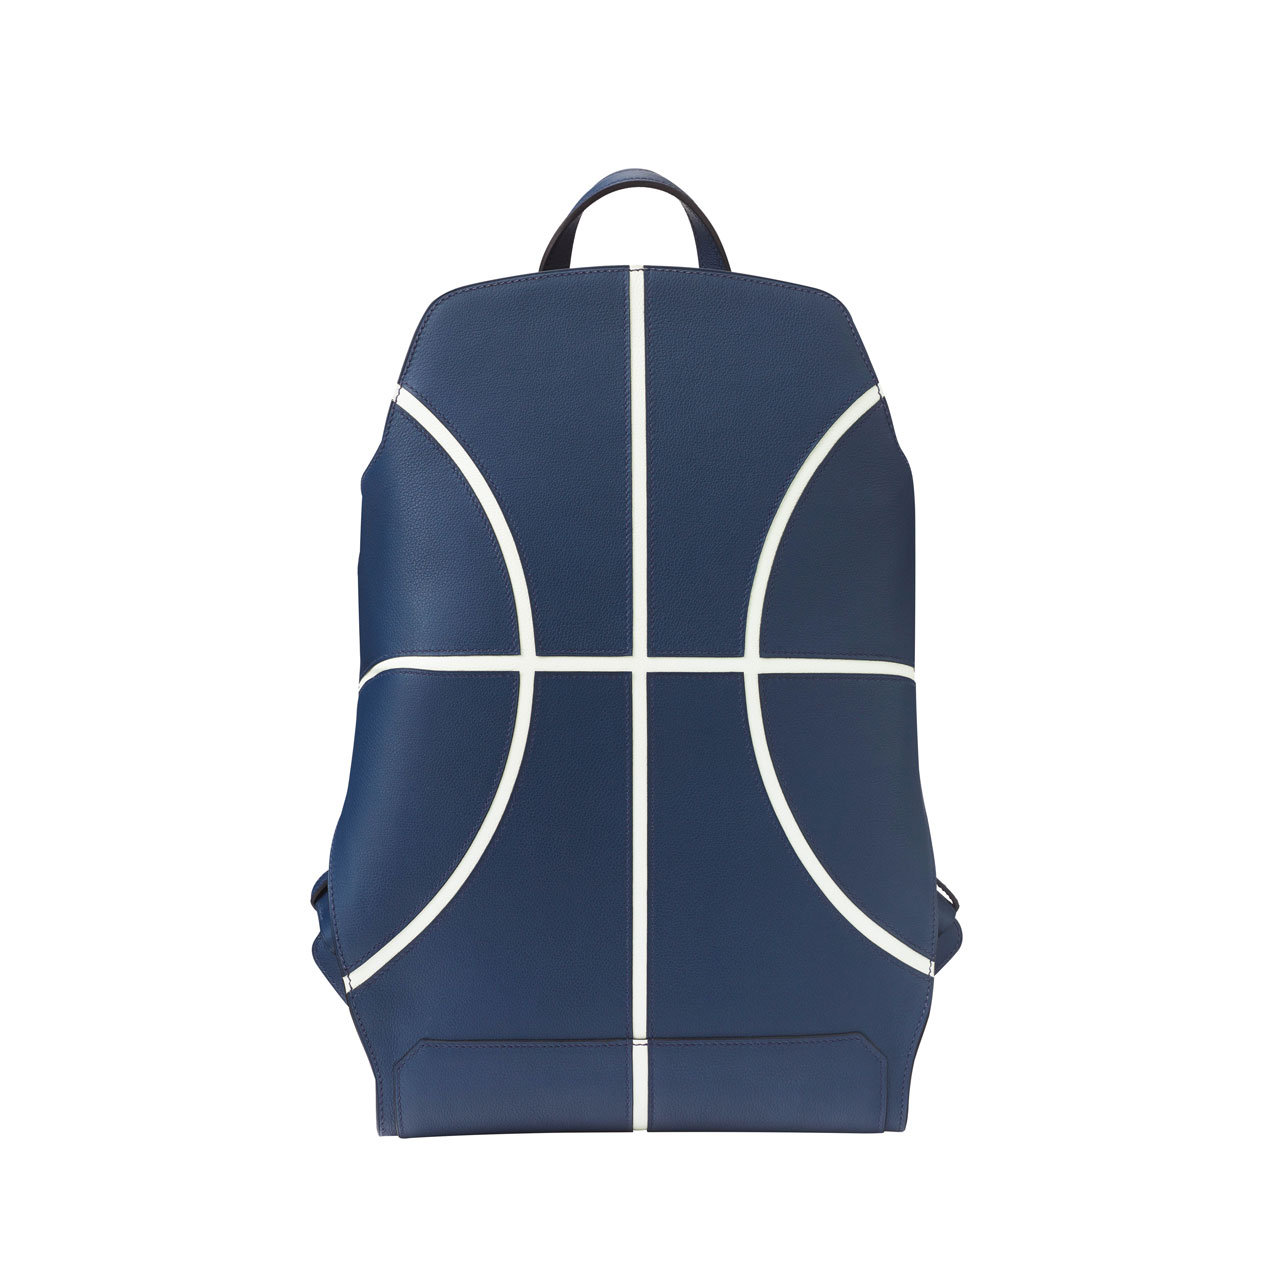 Cityback basketball backpack in Evercolor calfskin, Hermès SS18. Photo © Hermès.